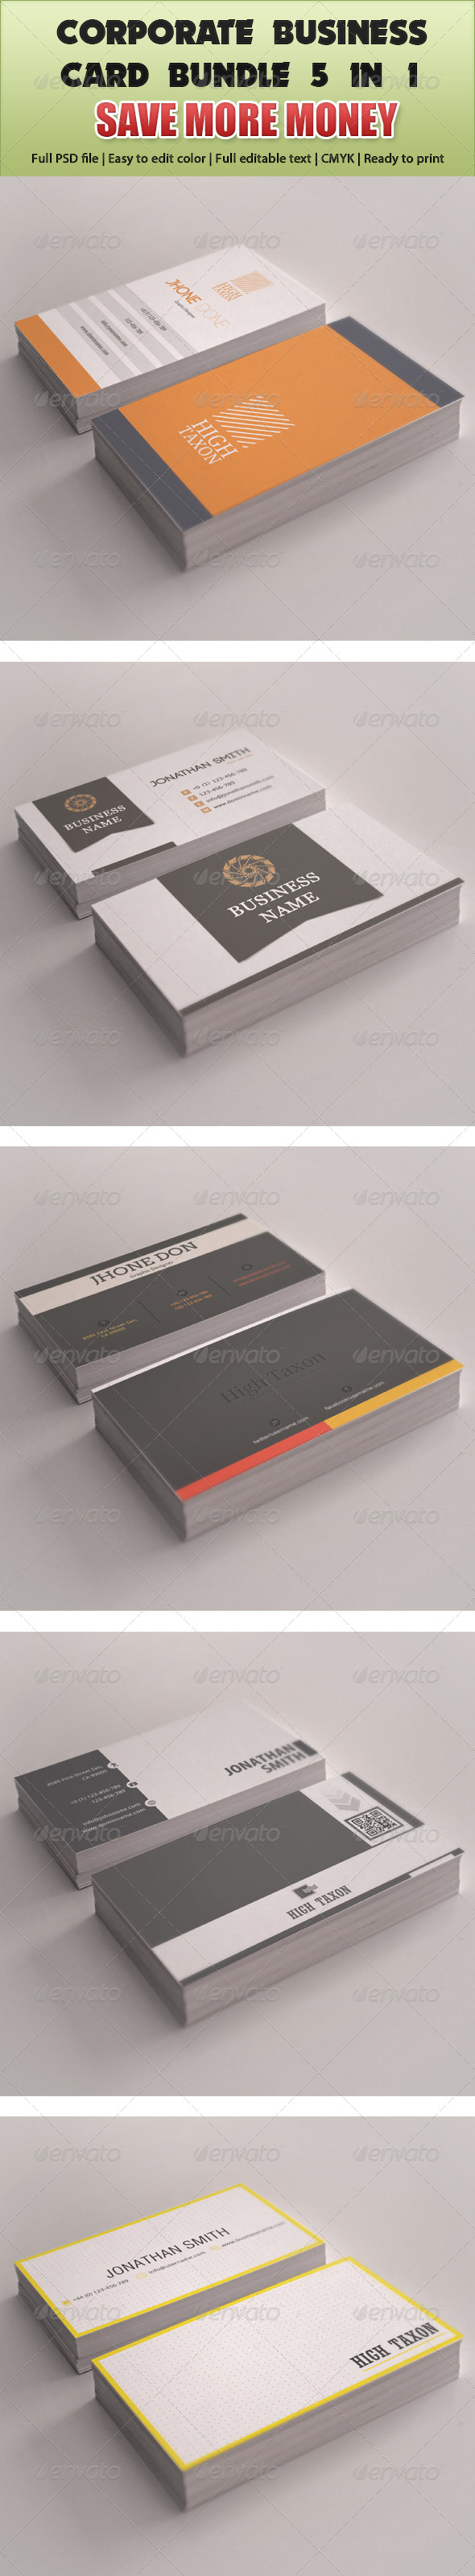 Corporate Business Card Mega Bundle 5 in 1 - Corporate Business Cards